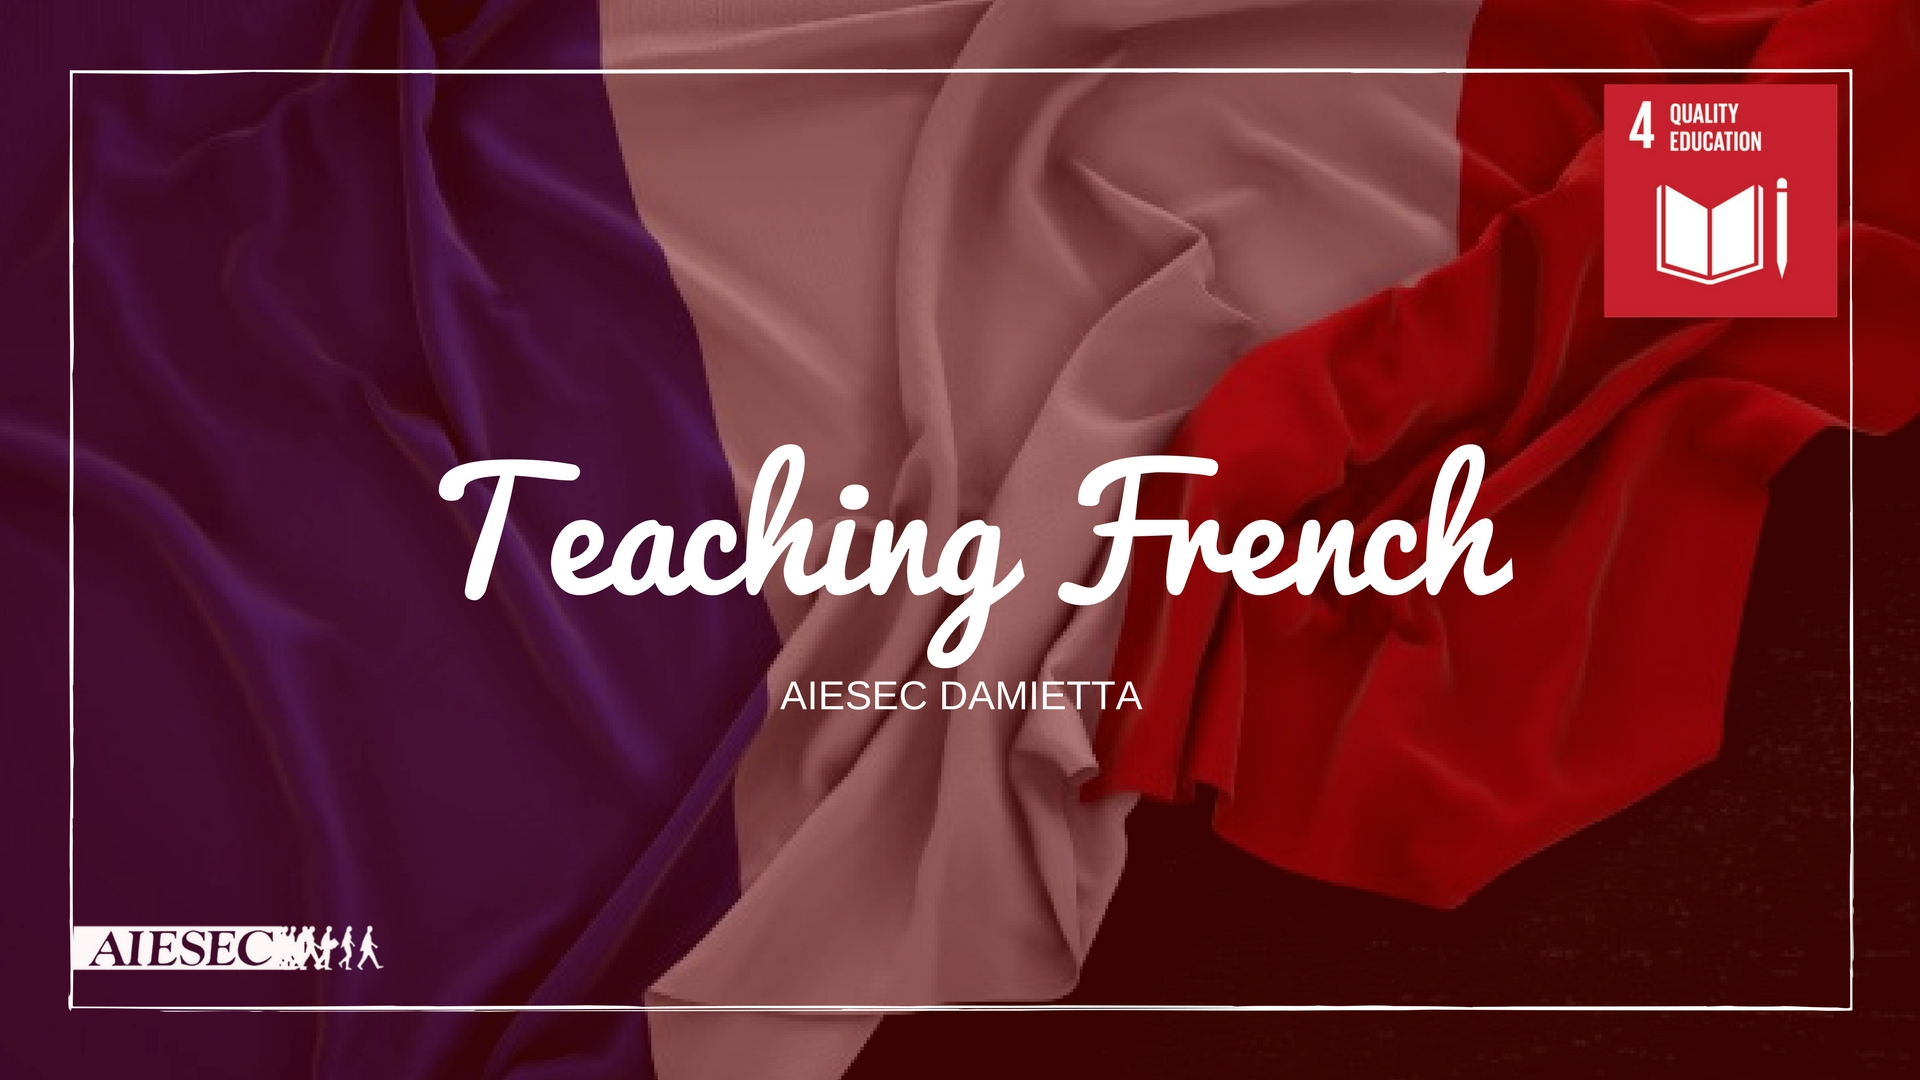 Teaching french for Quality Education